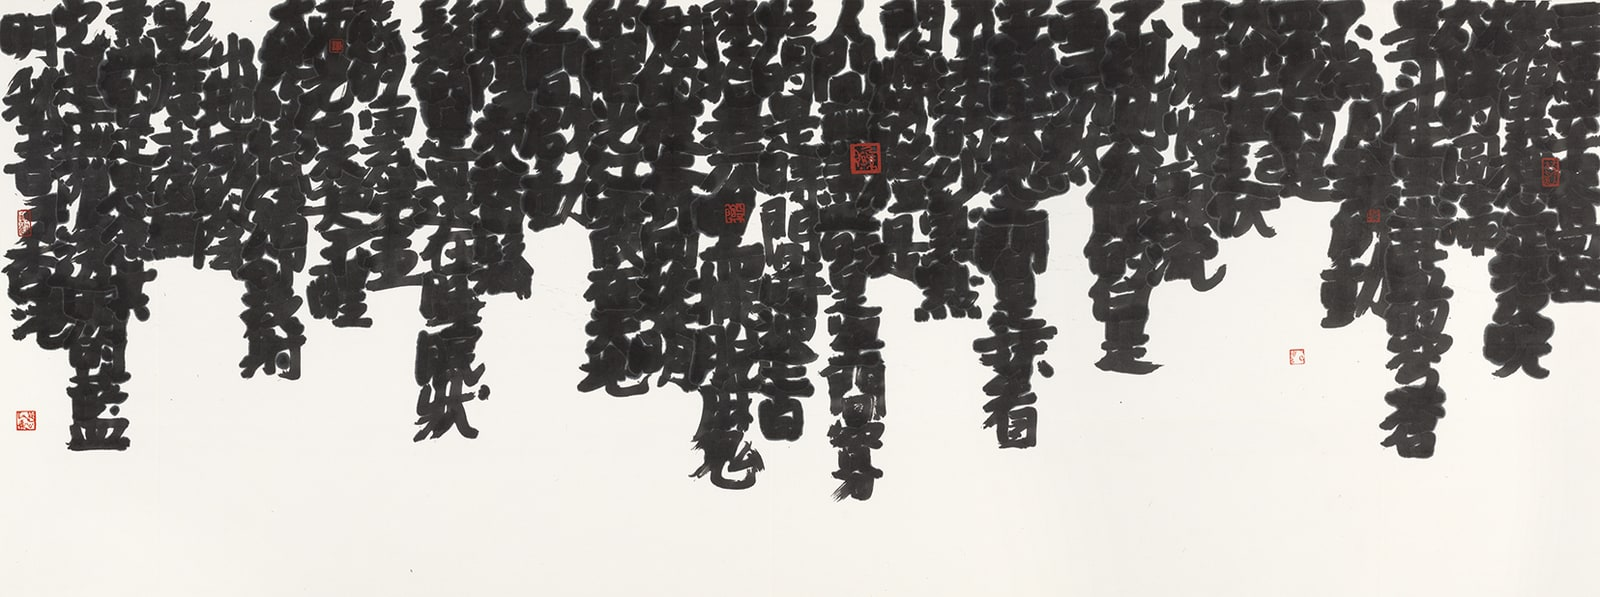 Fung Ming Chip 馮明秋, Time Script, Departure 三萬順時字, 2015